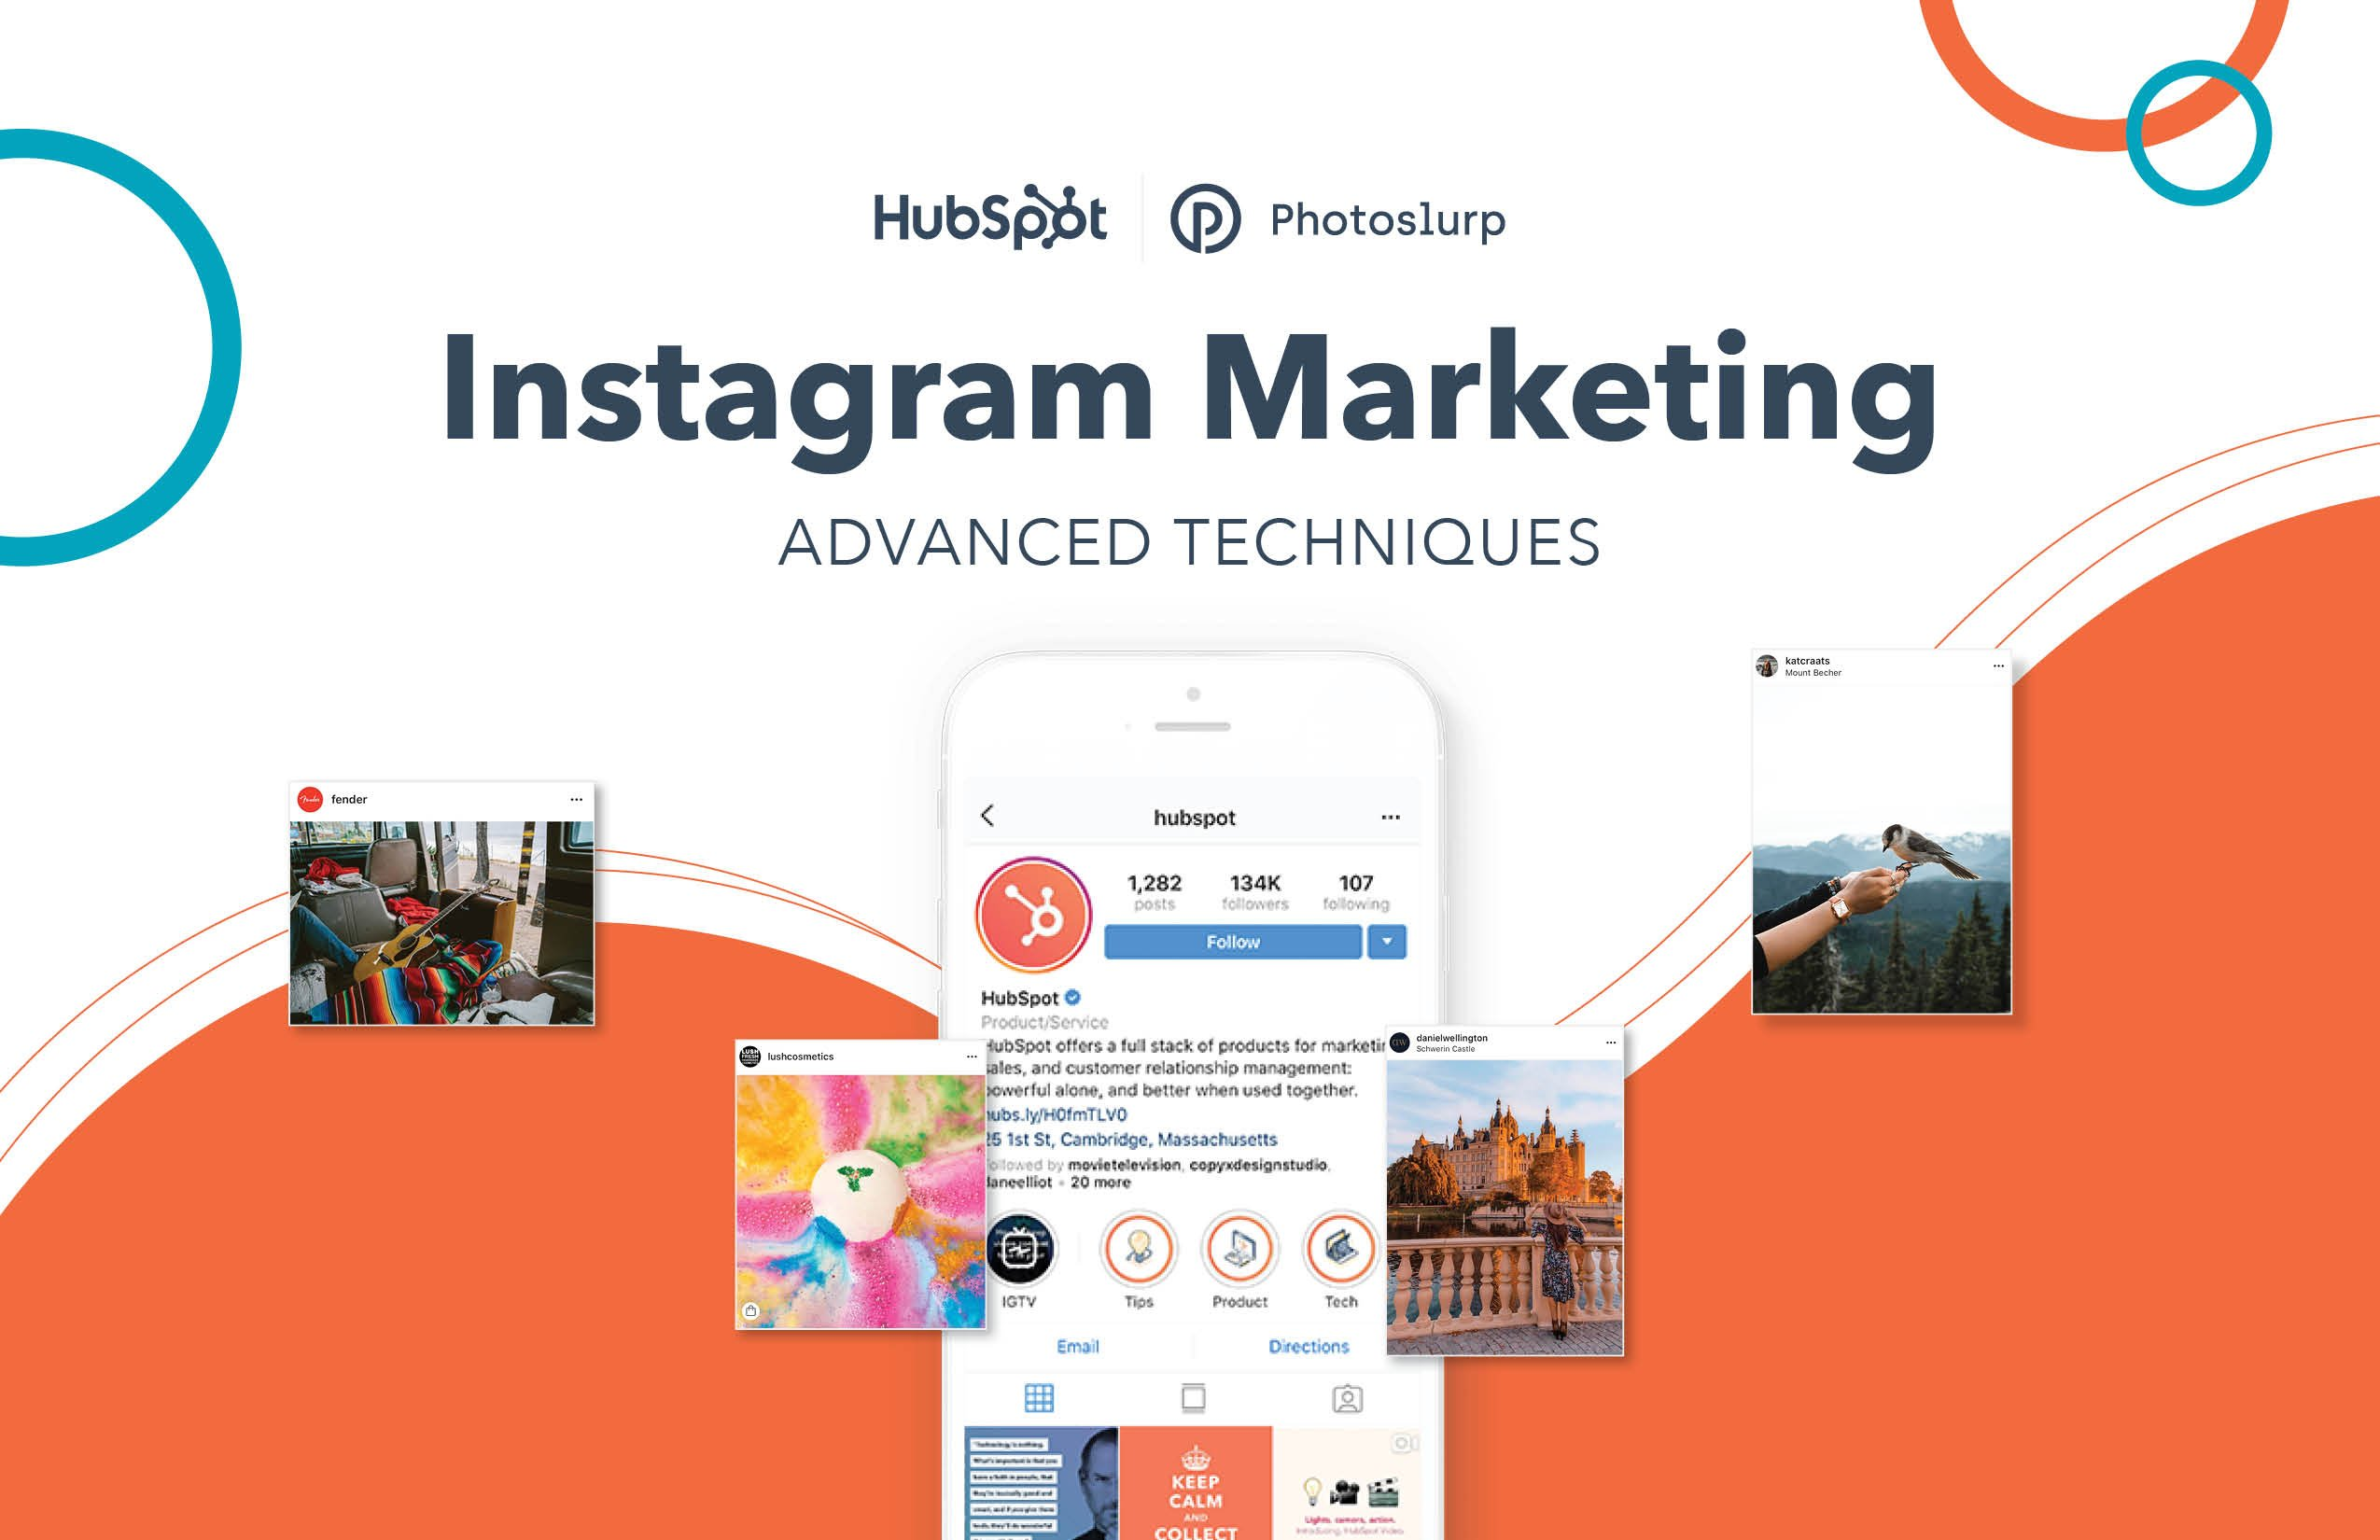 c65b8a85079 Your Guide to Instagram Marketing Advanced Techniques